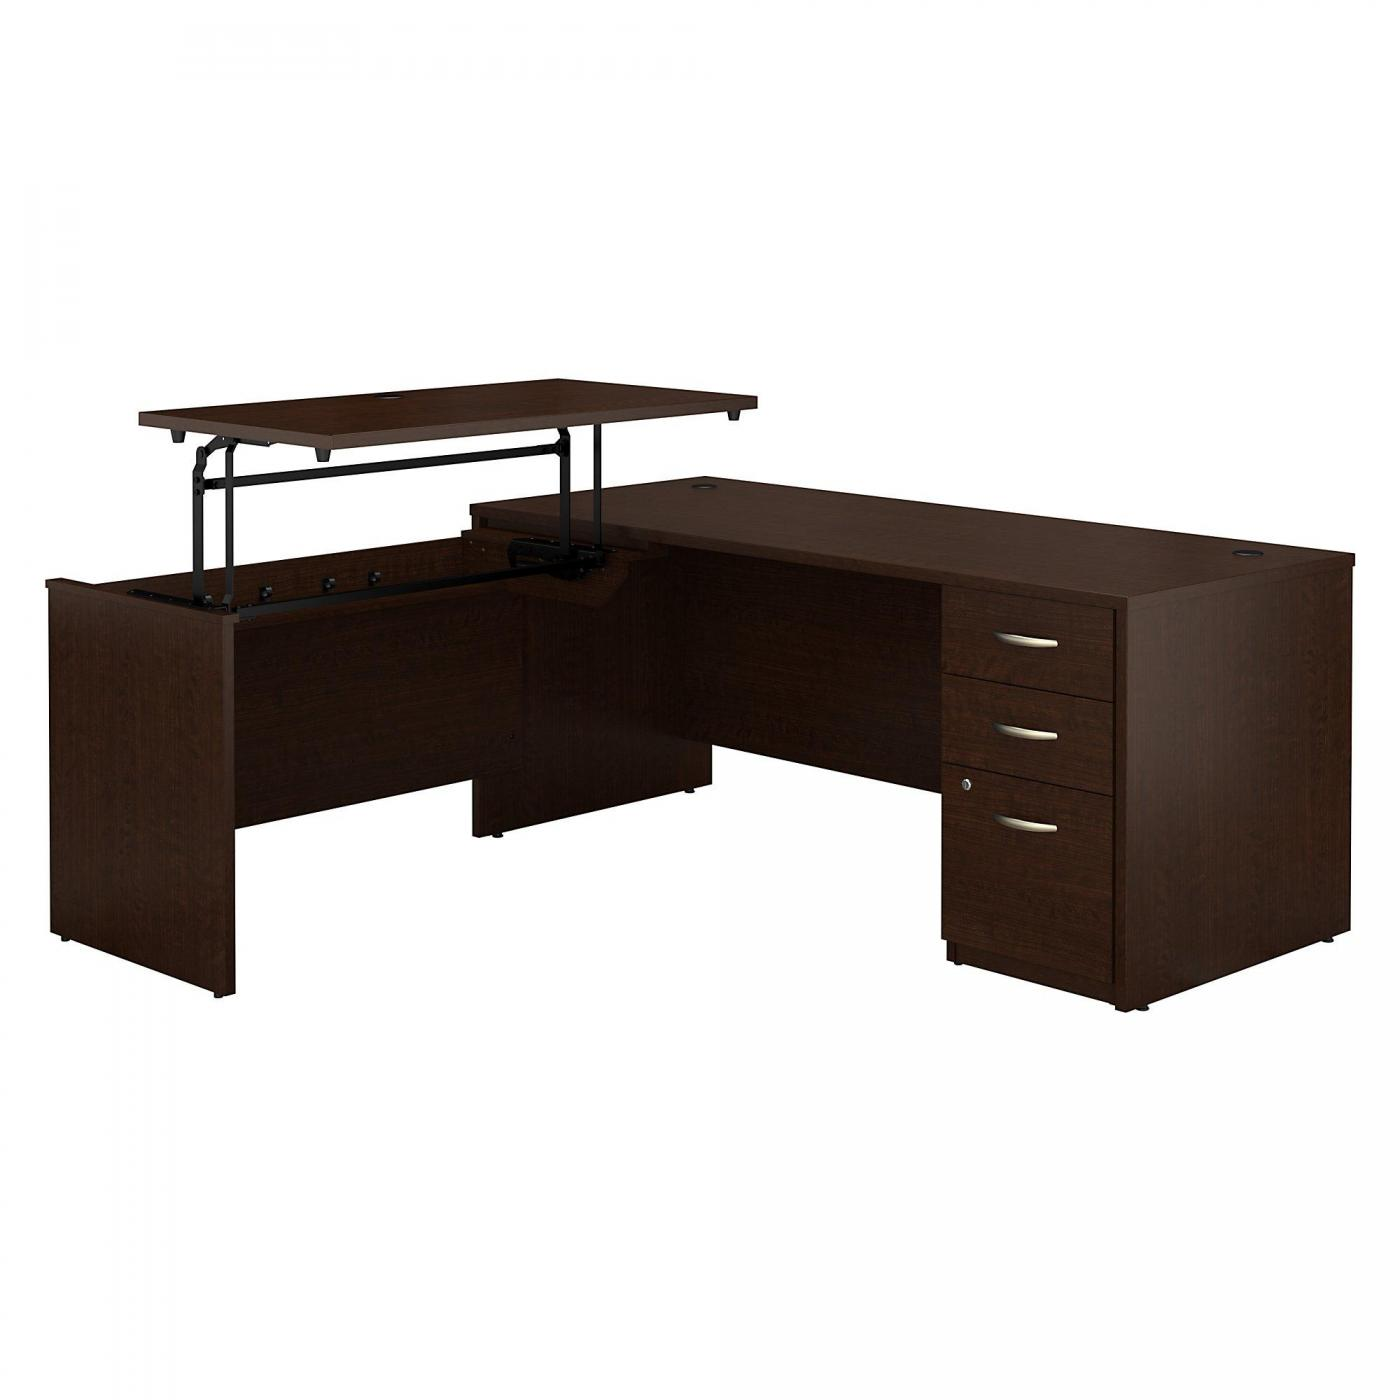 <font color=#c60><b>BUSH BUSINESS FURNITURE SERIES C ELITE 72W X 30D 3 POSITION SIT TO STAND L SHAPED DESK WITH 3 DRAWER FILE CABINET. FREE SHIPPING. VIDEO:</font></b></font></b>